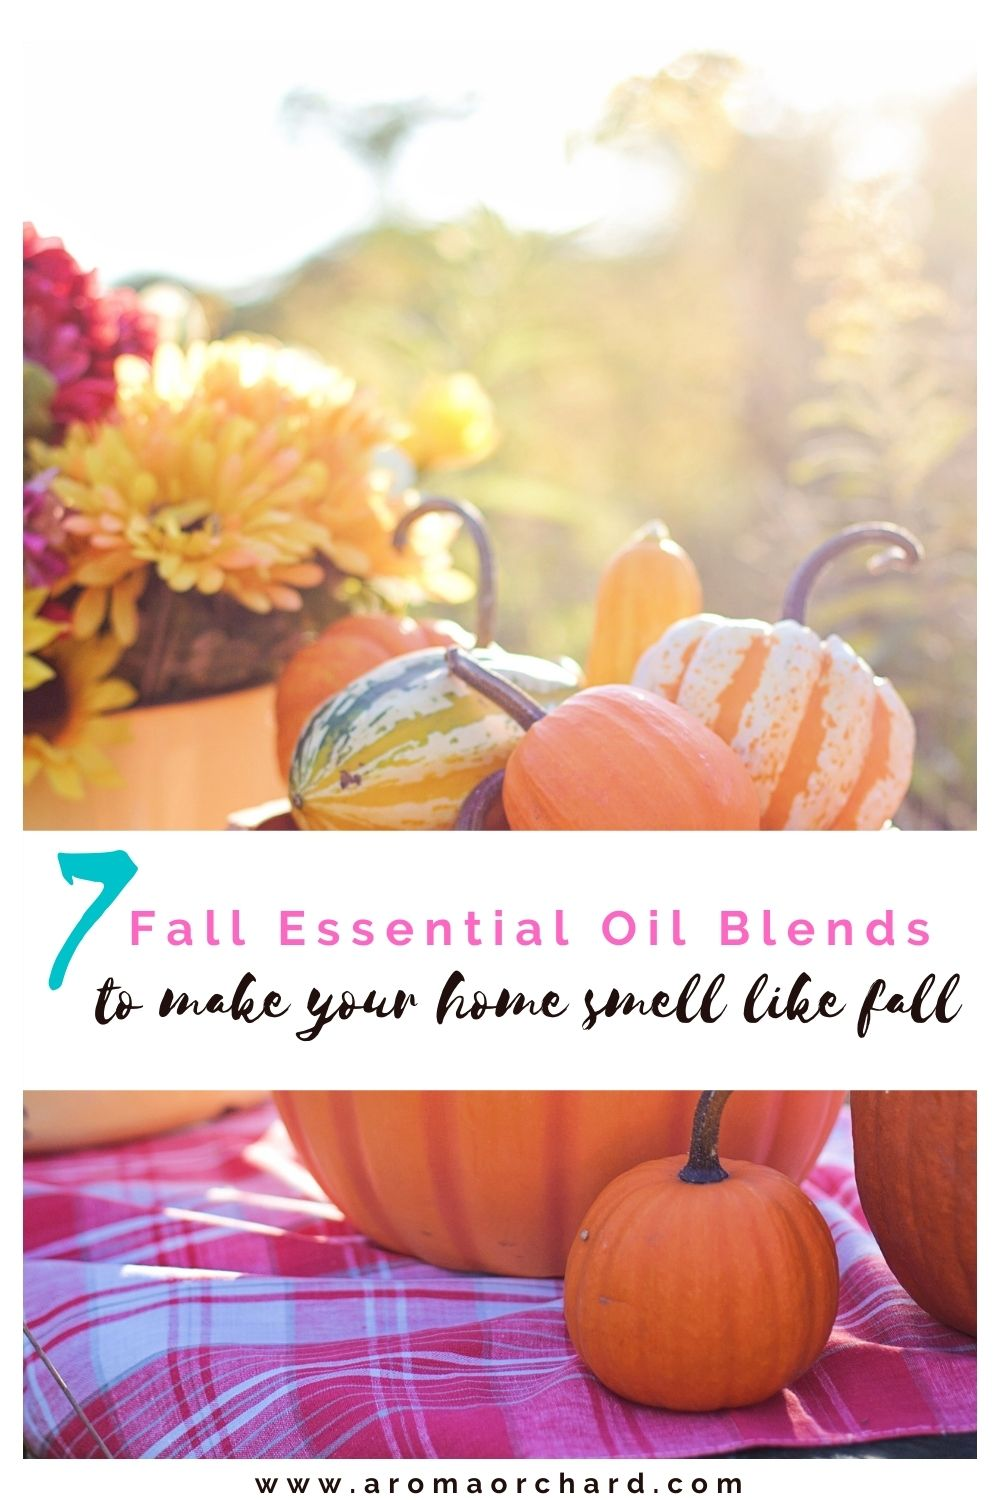 7 Fall Essential Oil Blends To Make Your Home Smell Like Fall